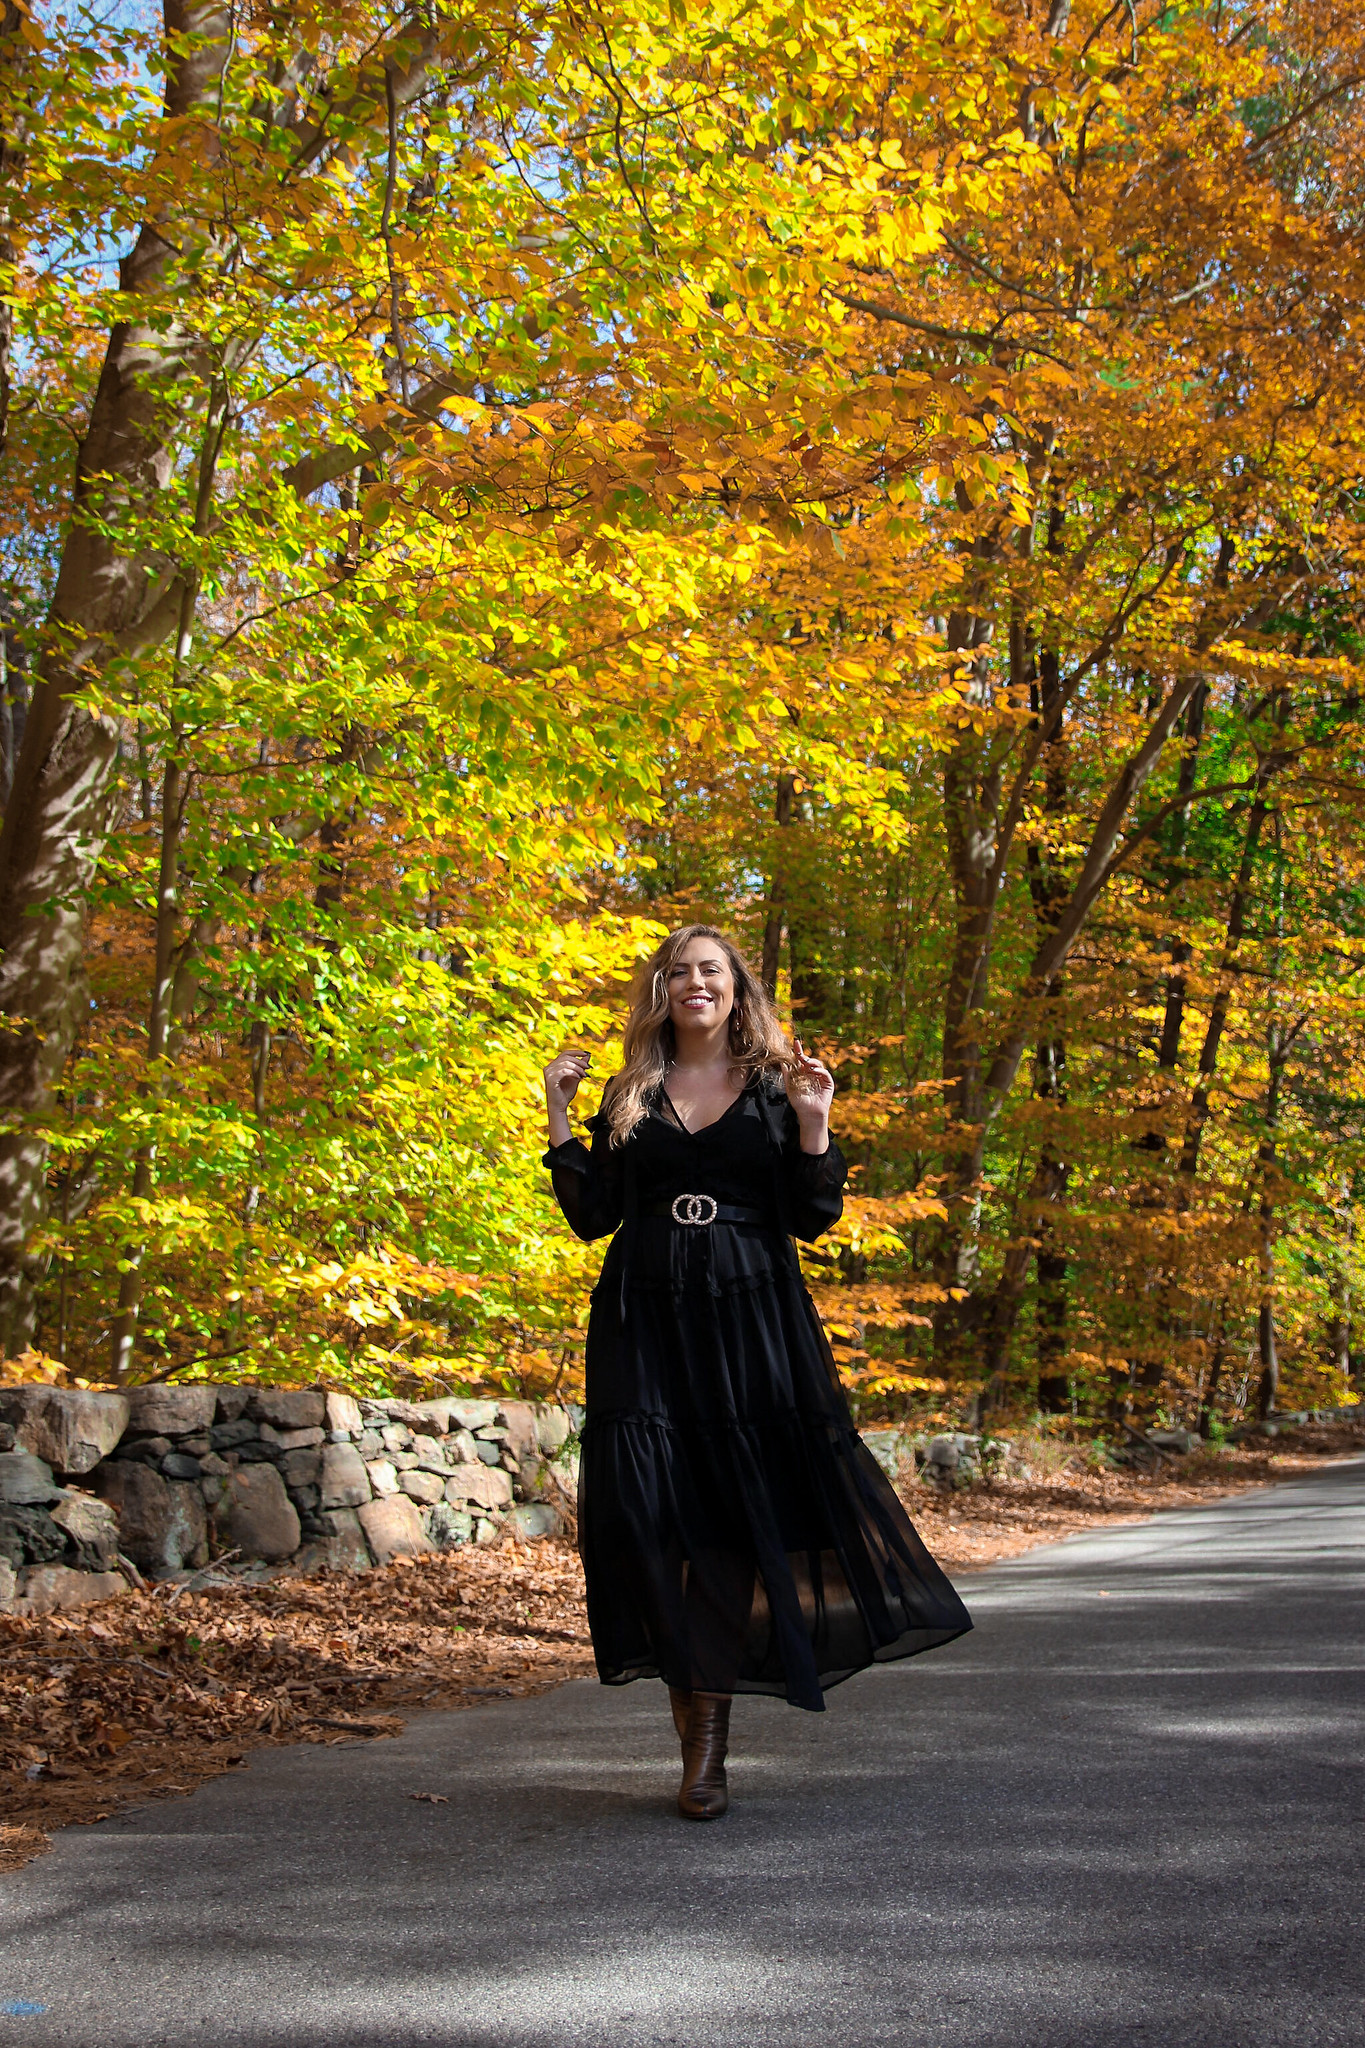 Witchy Black Dress Fall Photoshoot in New York | Fall Foliage | Westchester County NY Merestead